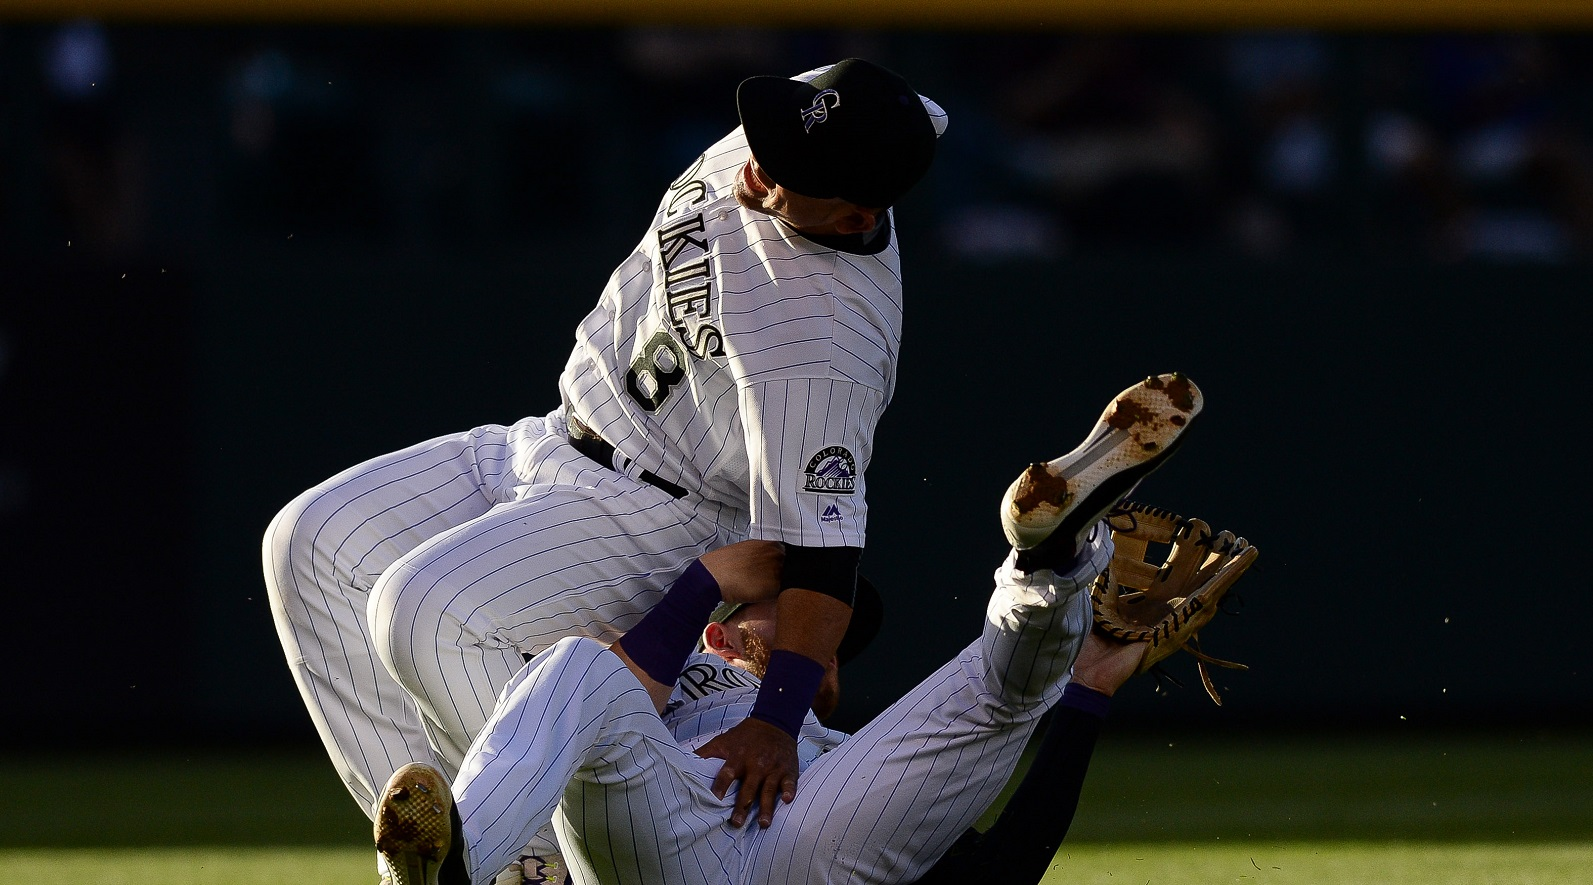 Gerardo Parra suffers scary leg injury after Trevor Story dives into him